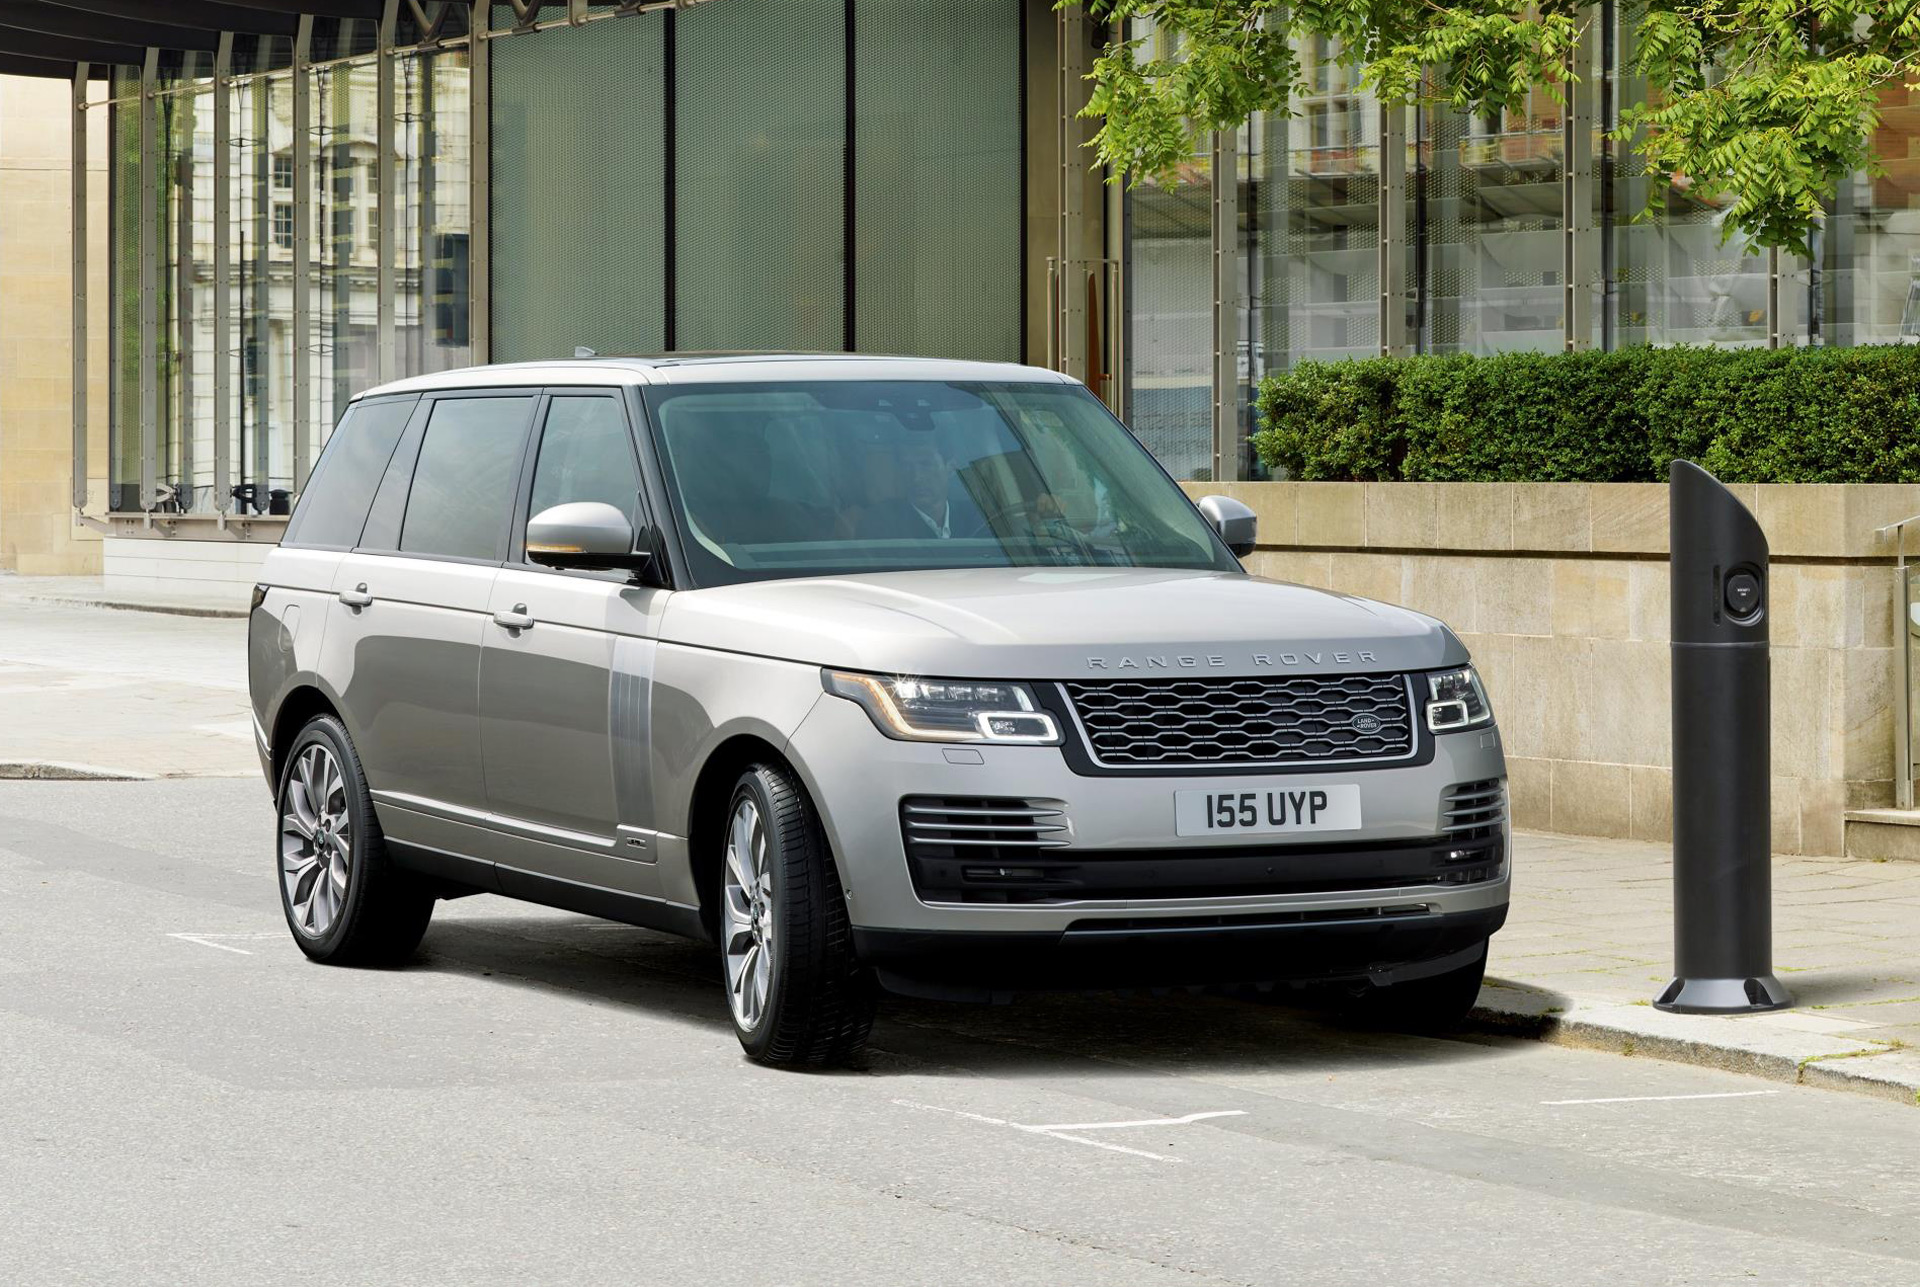 2019 Land Rover Range Rover P400e plug in hybrid revealed on sale